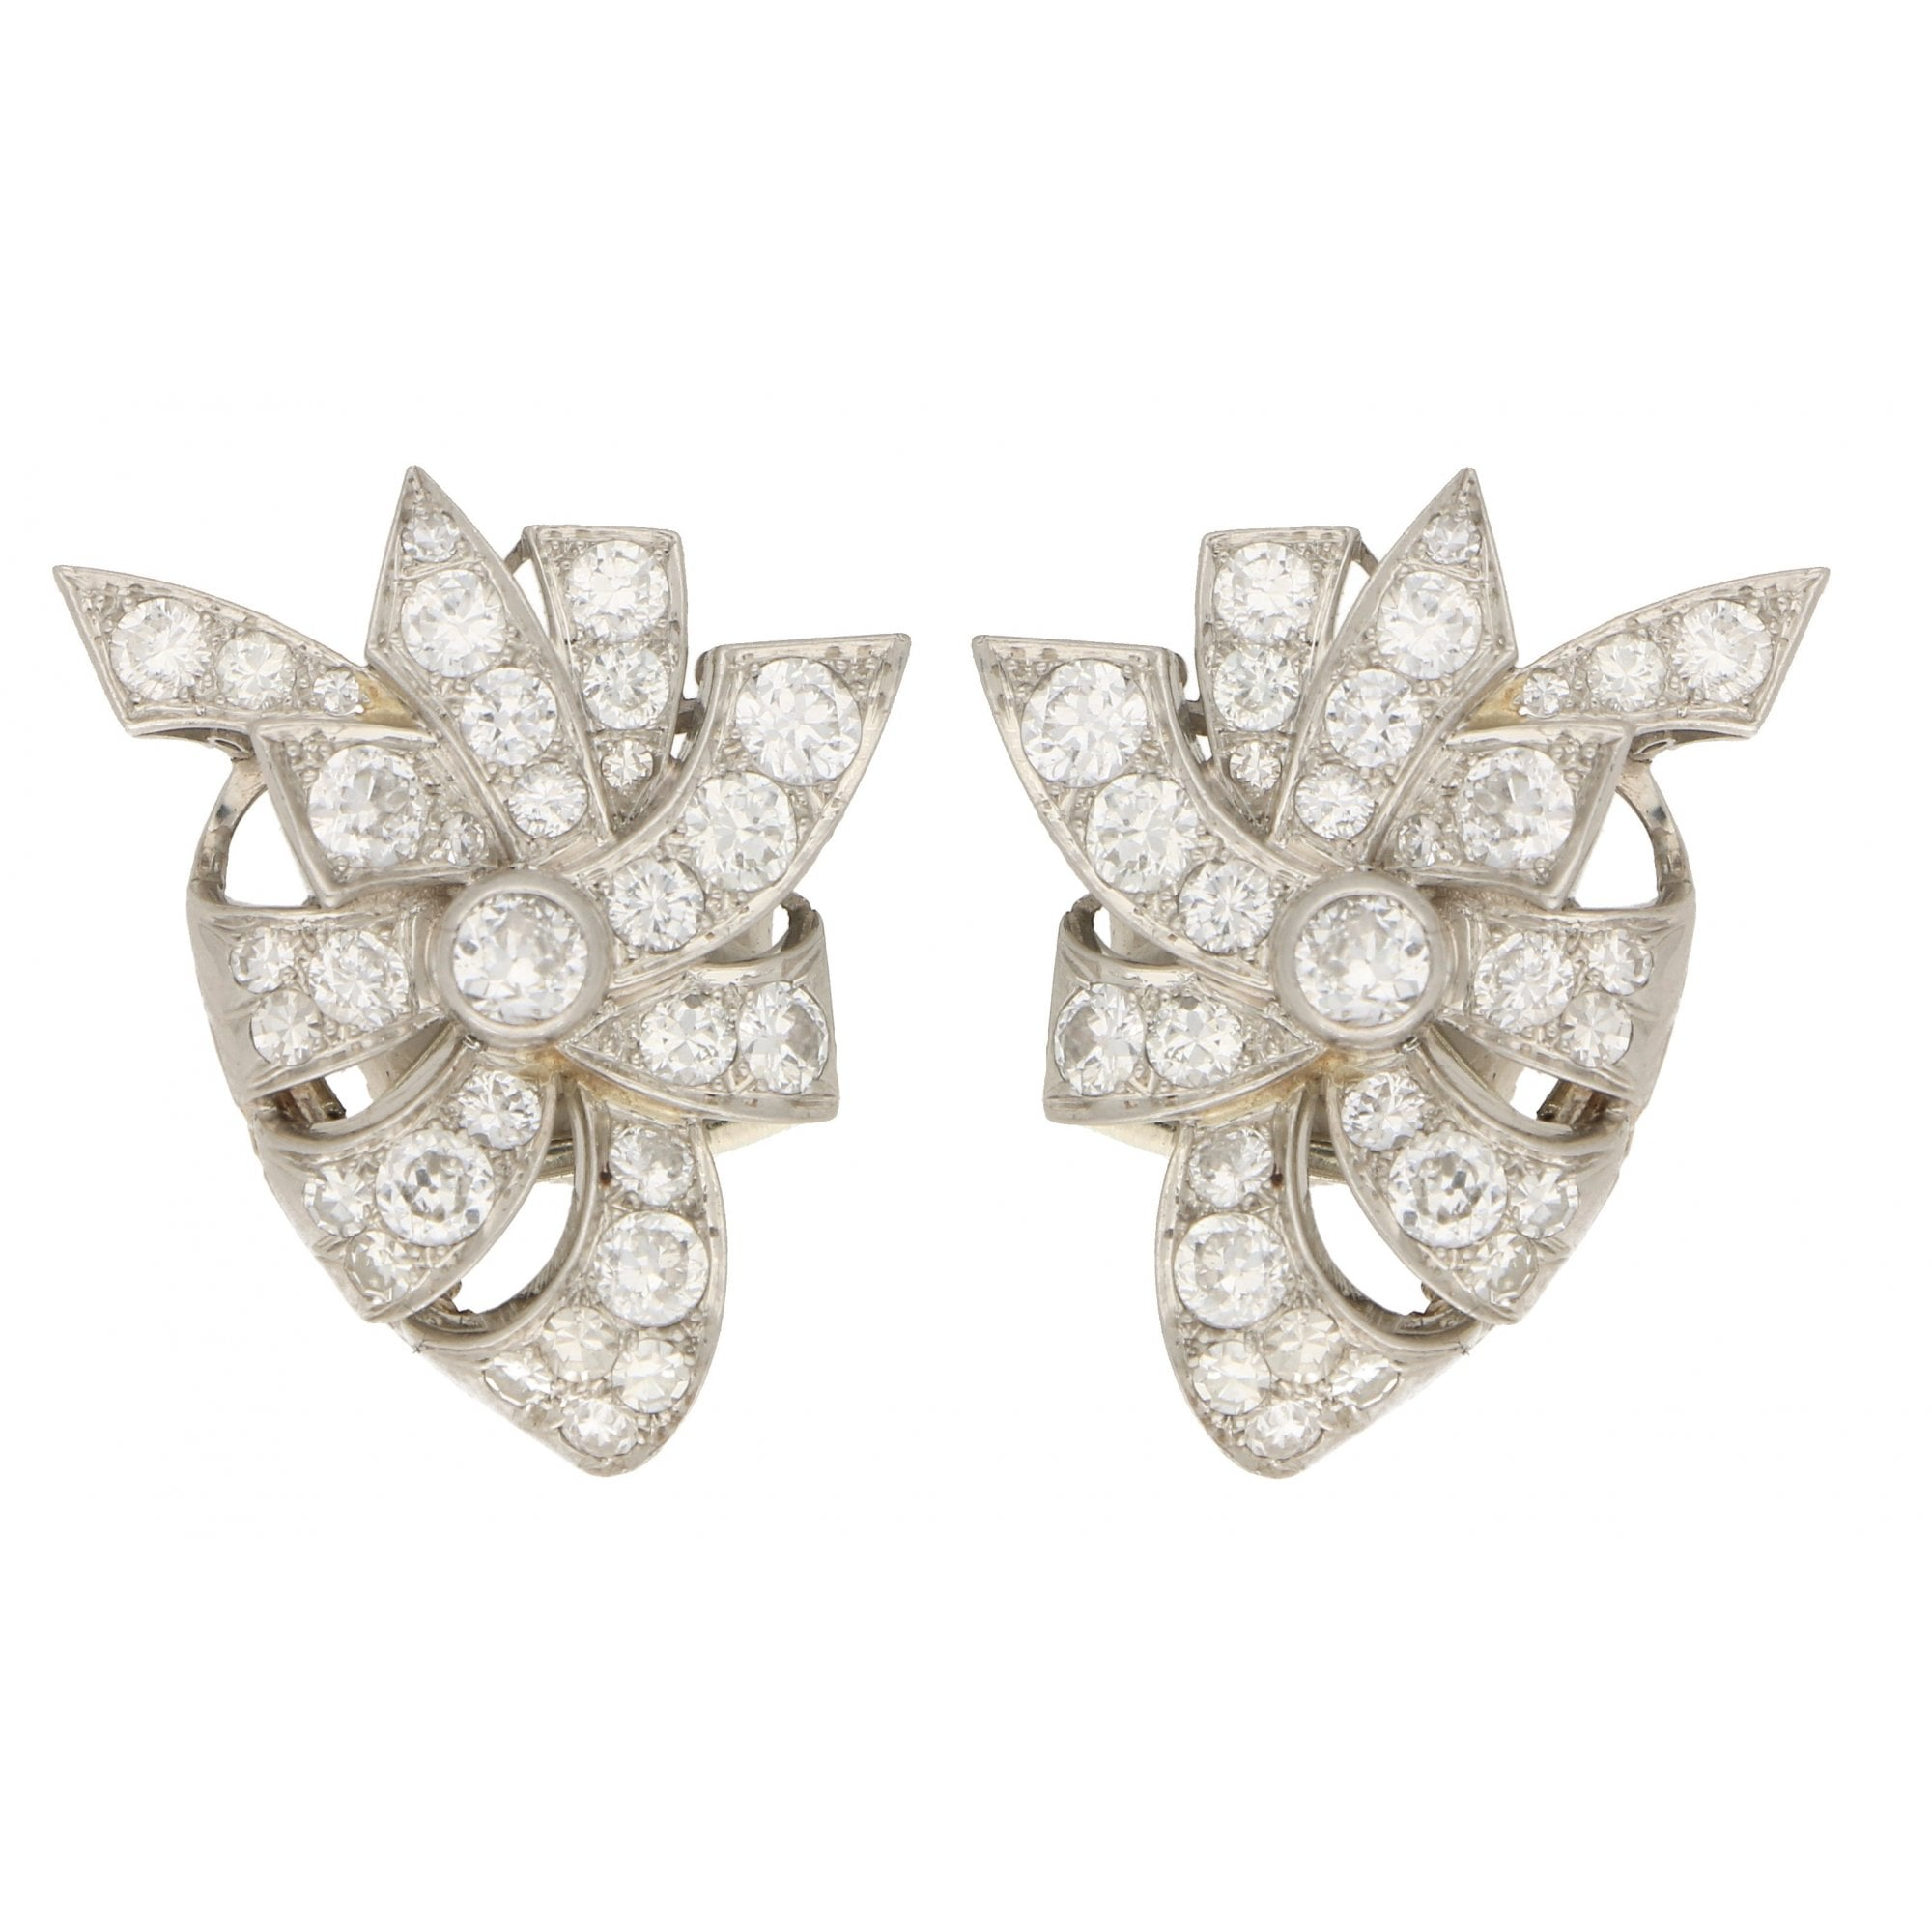 Mid 20th Century Diamond Bow Earrings In White Gold